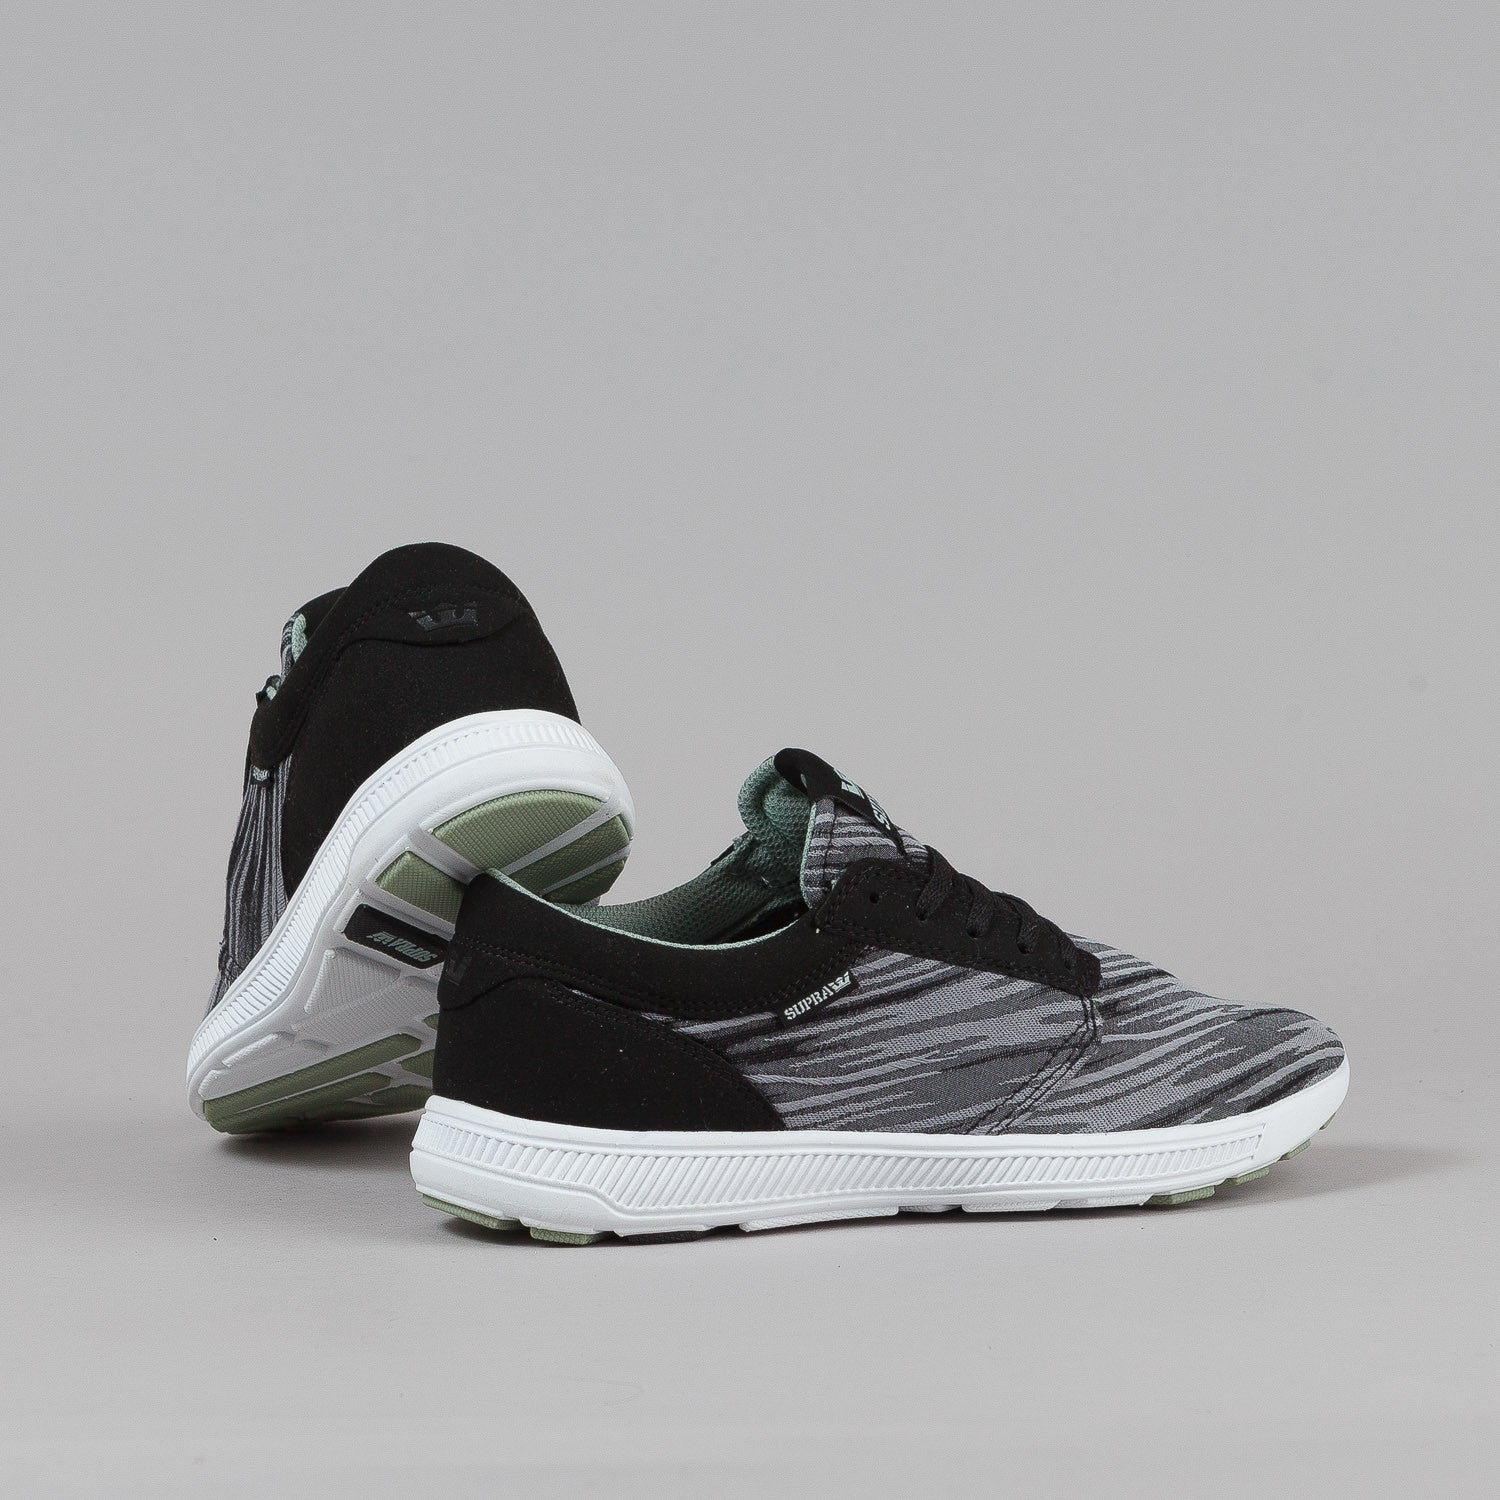 Supra Hammer Run Shoes - Black / Brushstroke / White